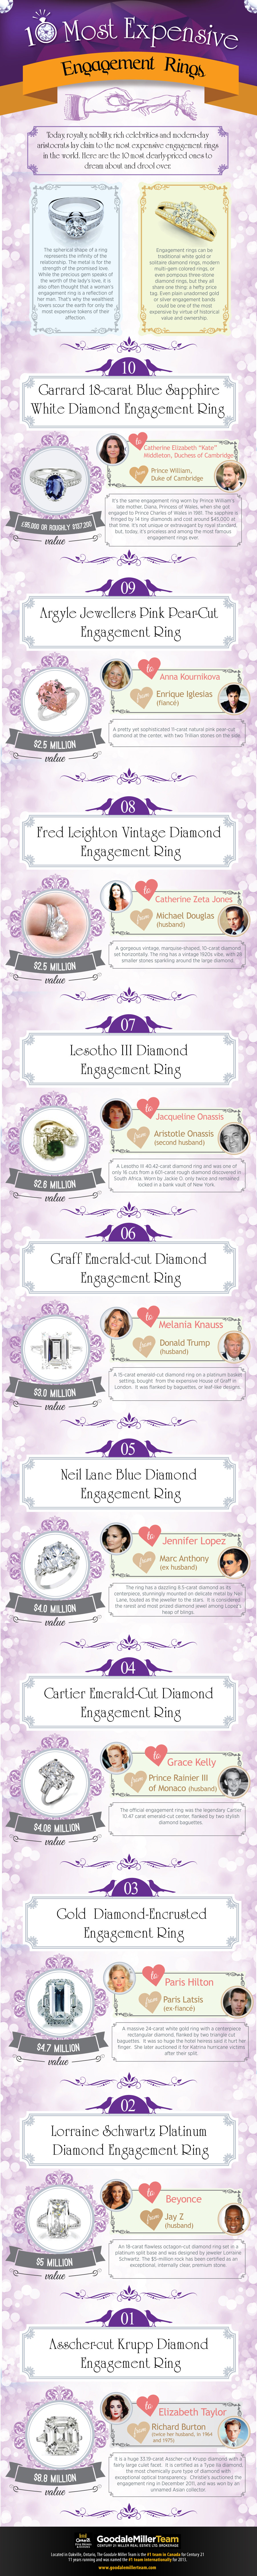 The World's Most Expensive Engagement Rings EVER